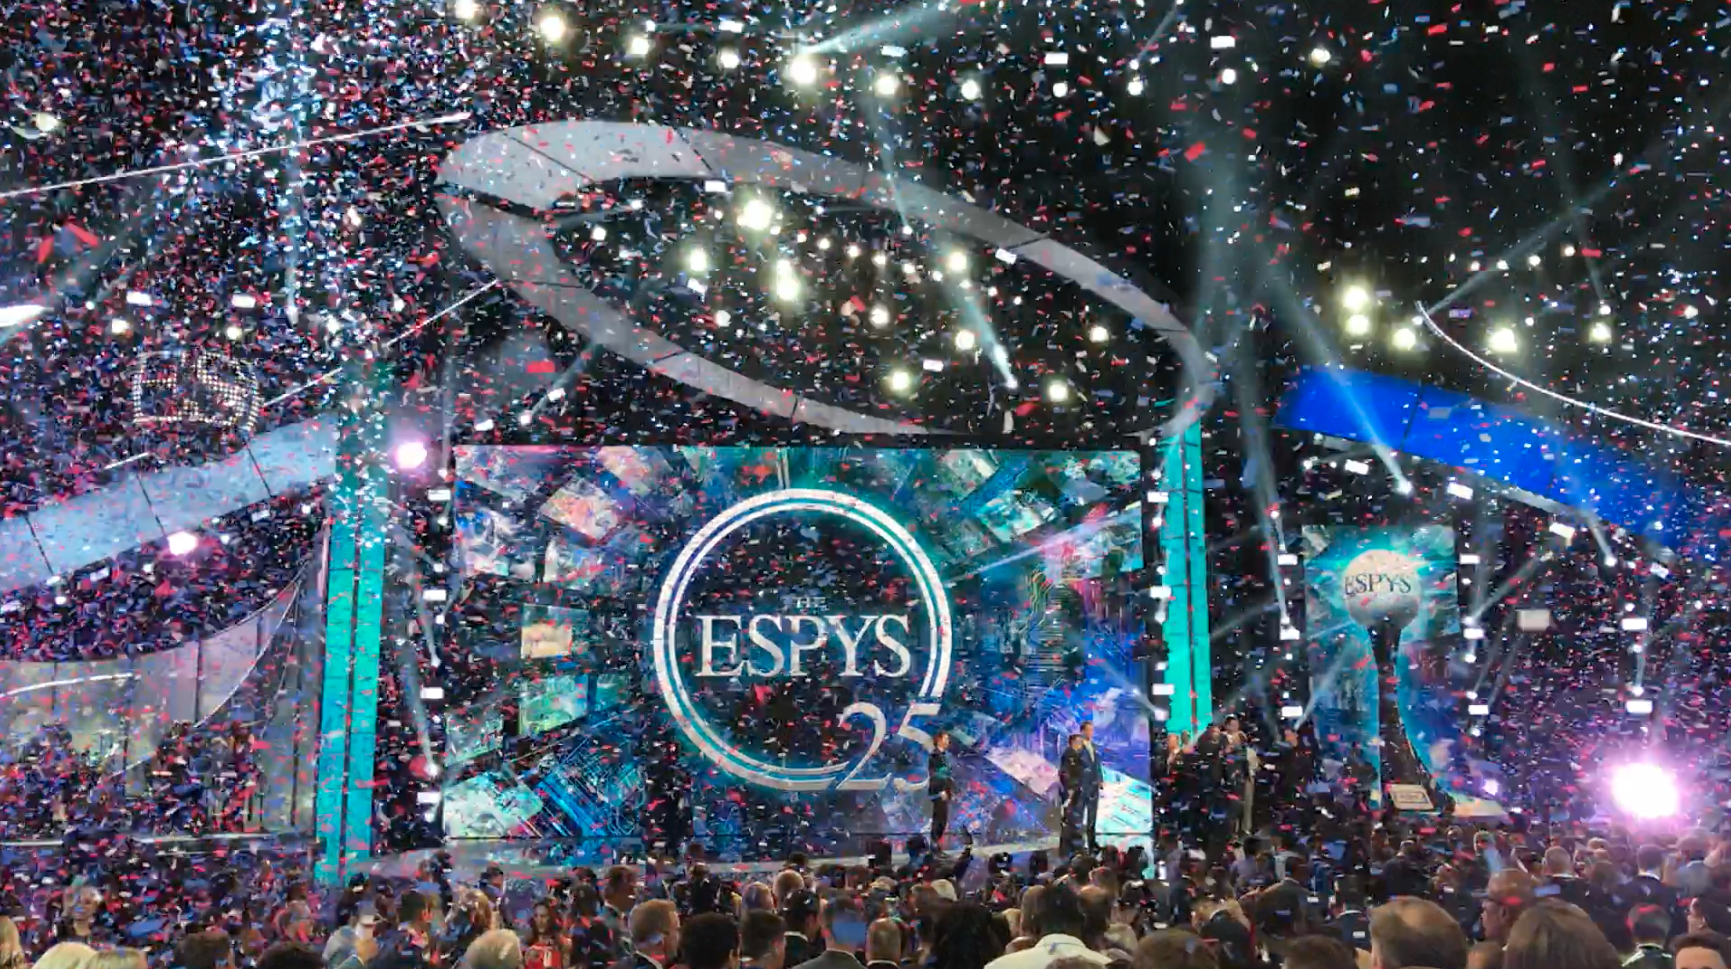 The 2017 ESPY Awards at Microsoft Theater, Los Angeles, CA